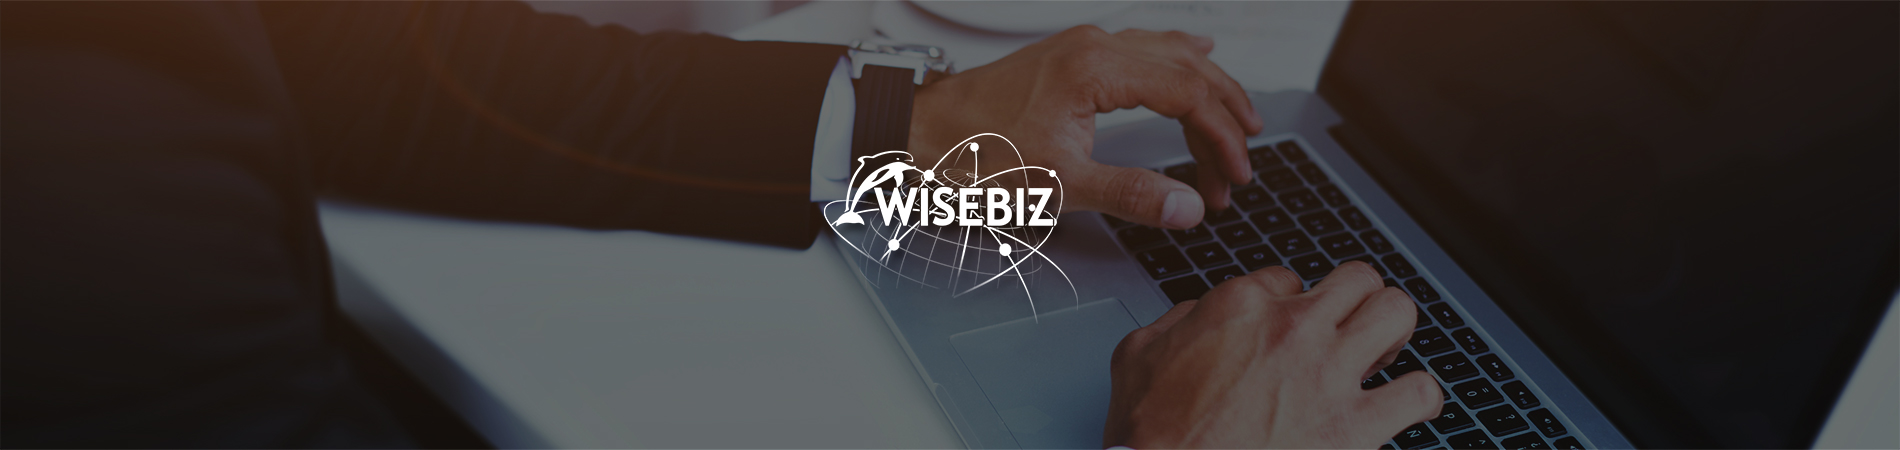 System-Development_WiseBiz_Header_1900